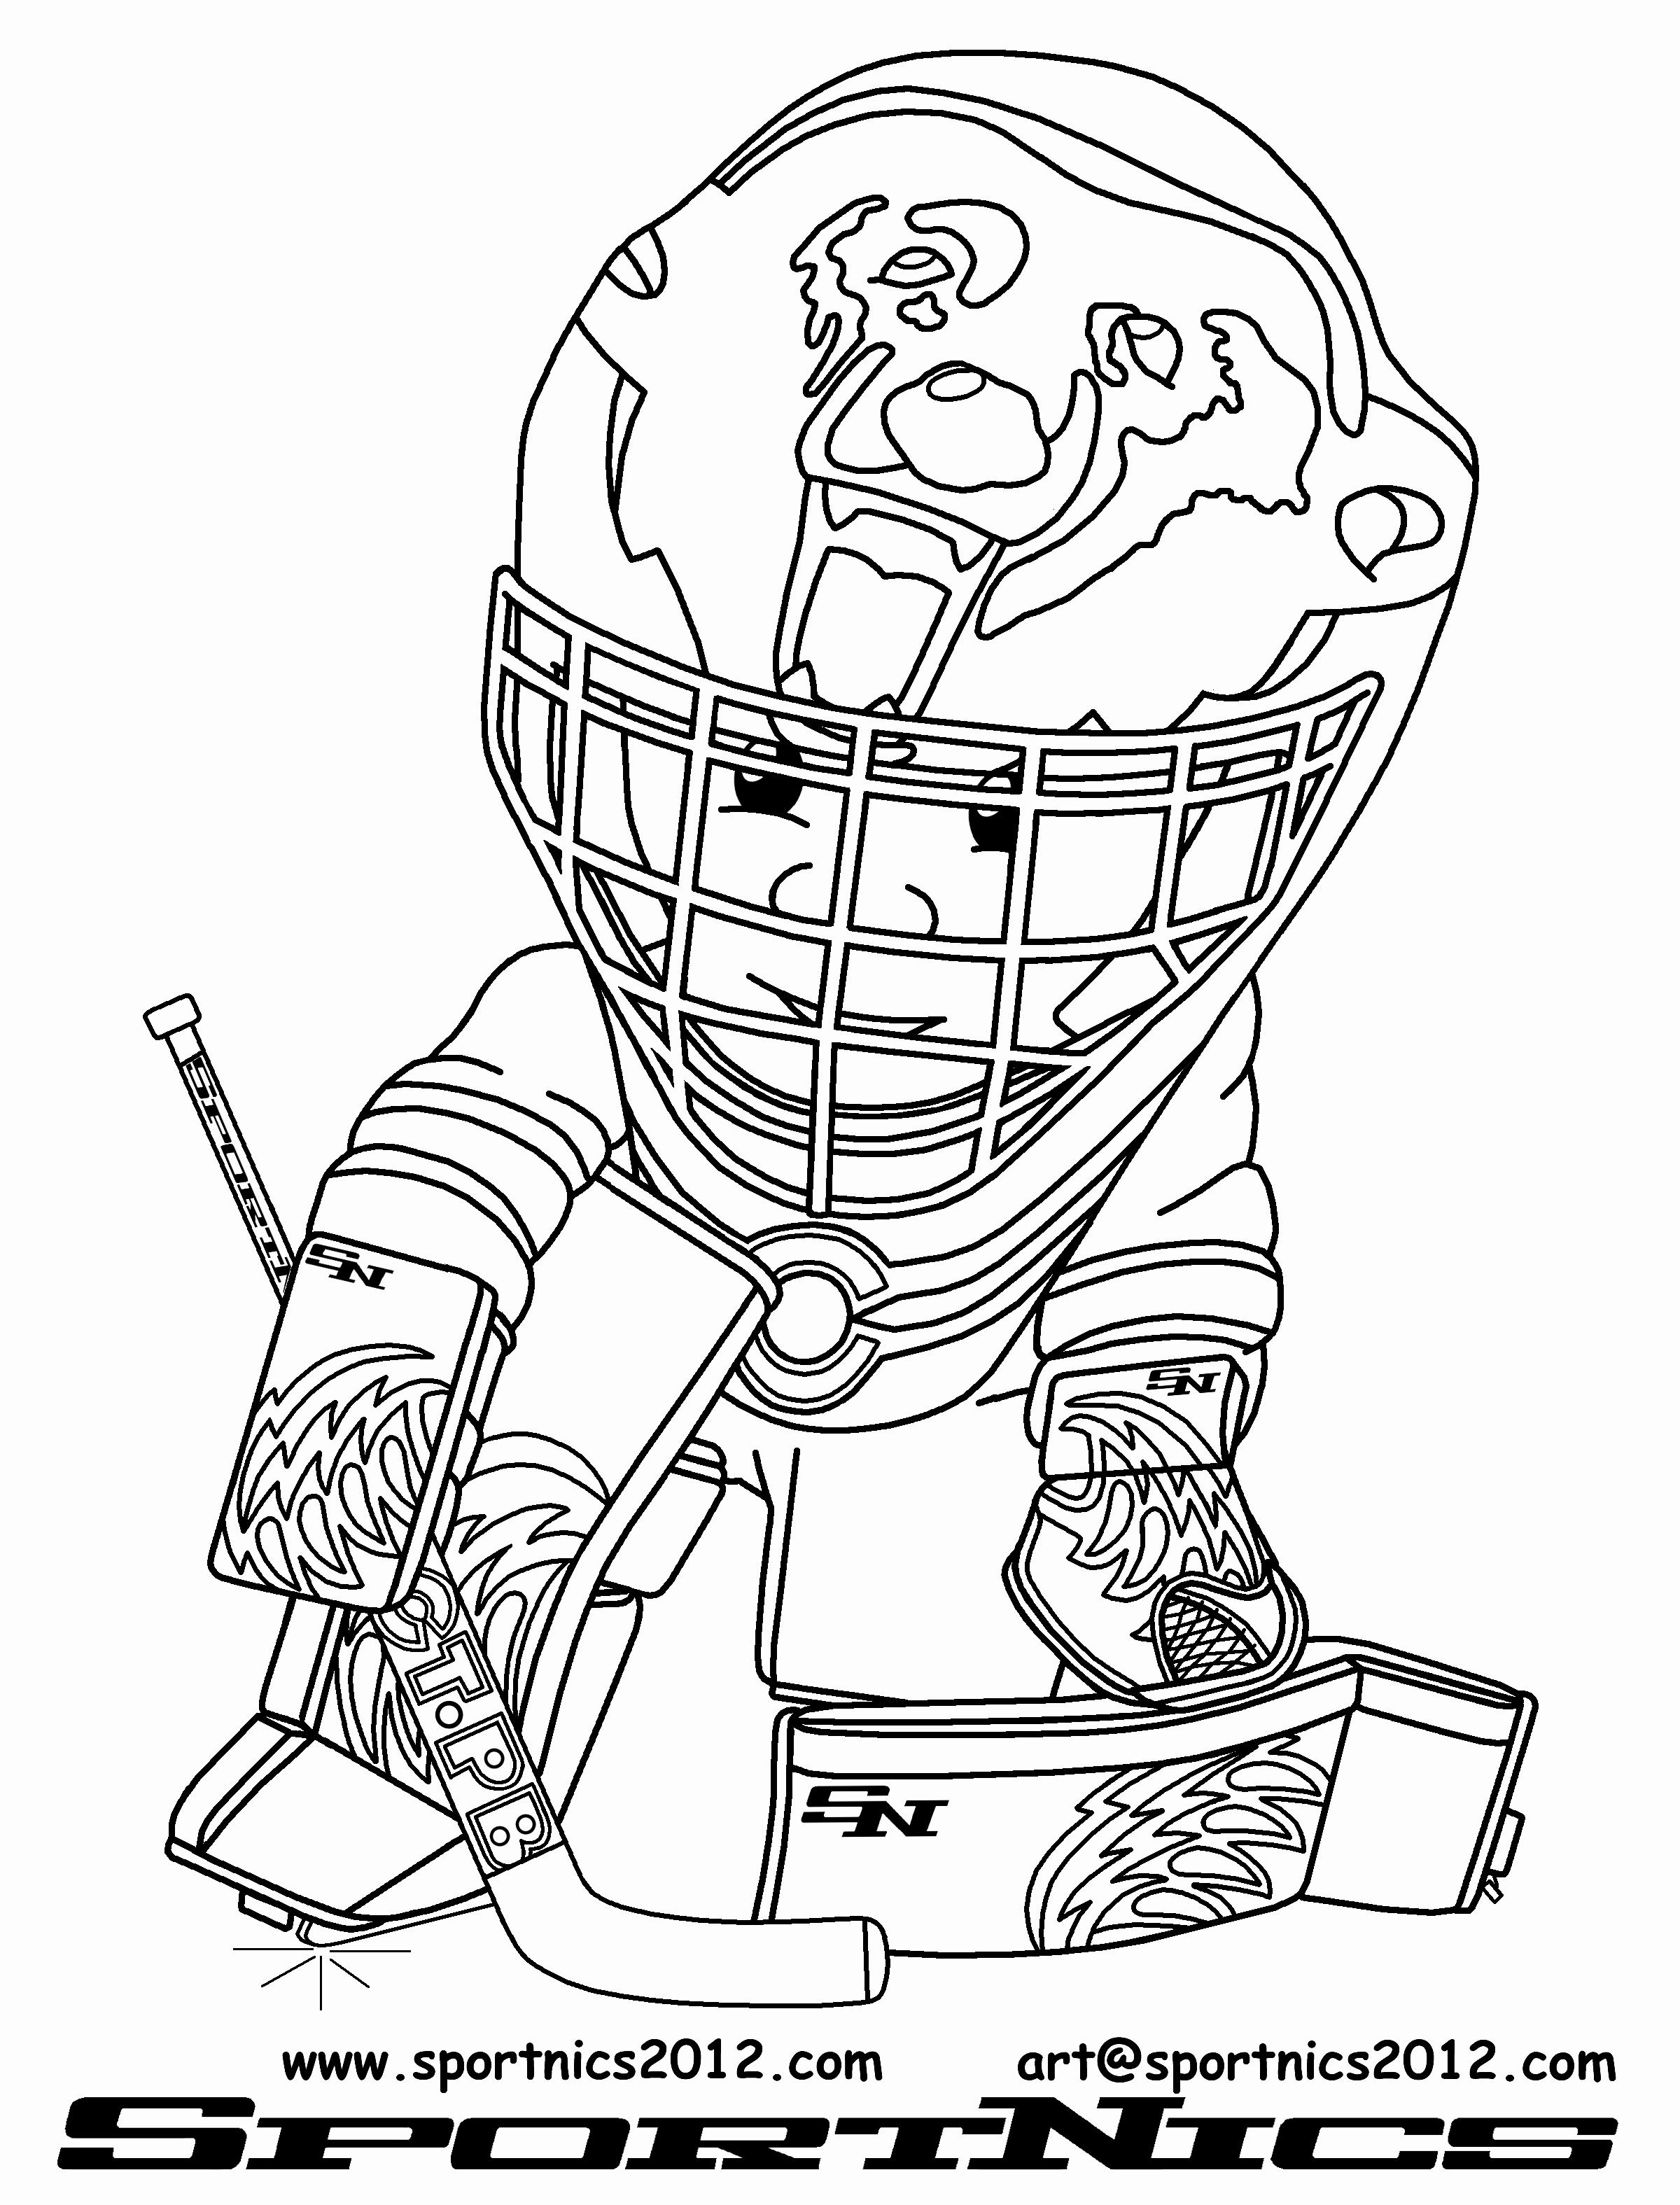 boston bruins coloring pictures boston bruins logo coloring page free printable coloring coloring pictures bruins boston